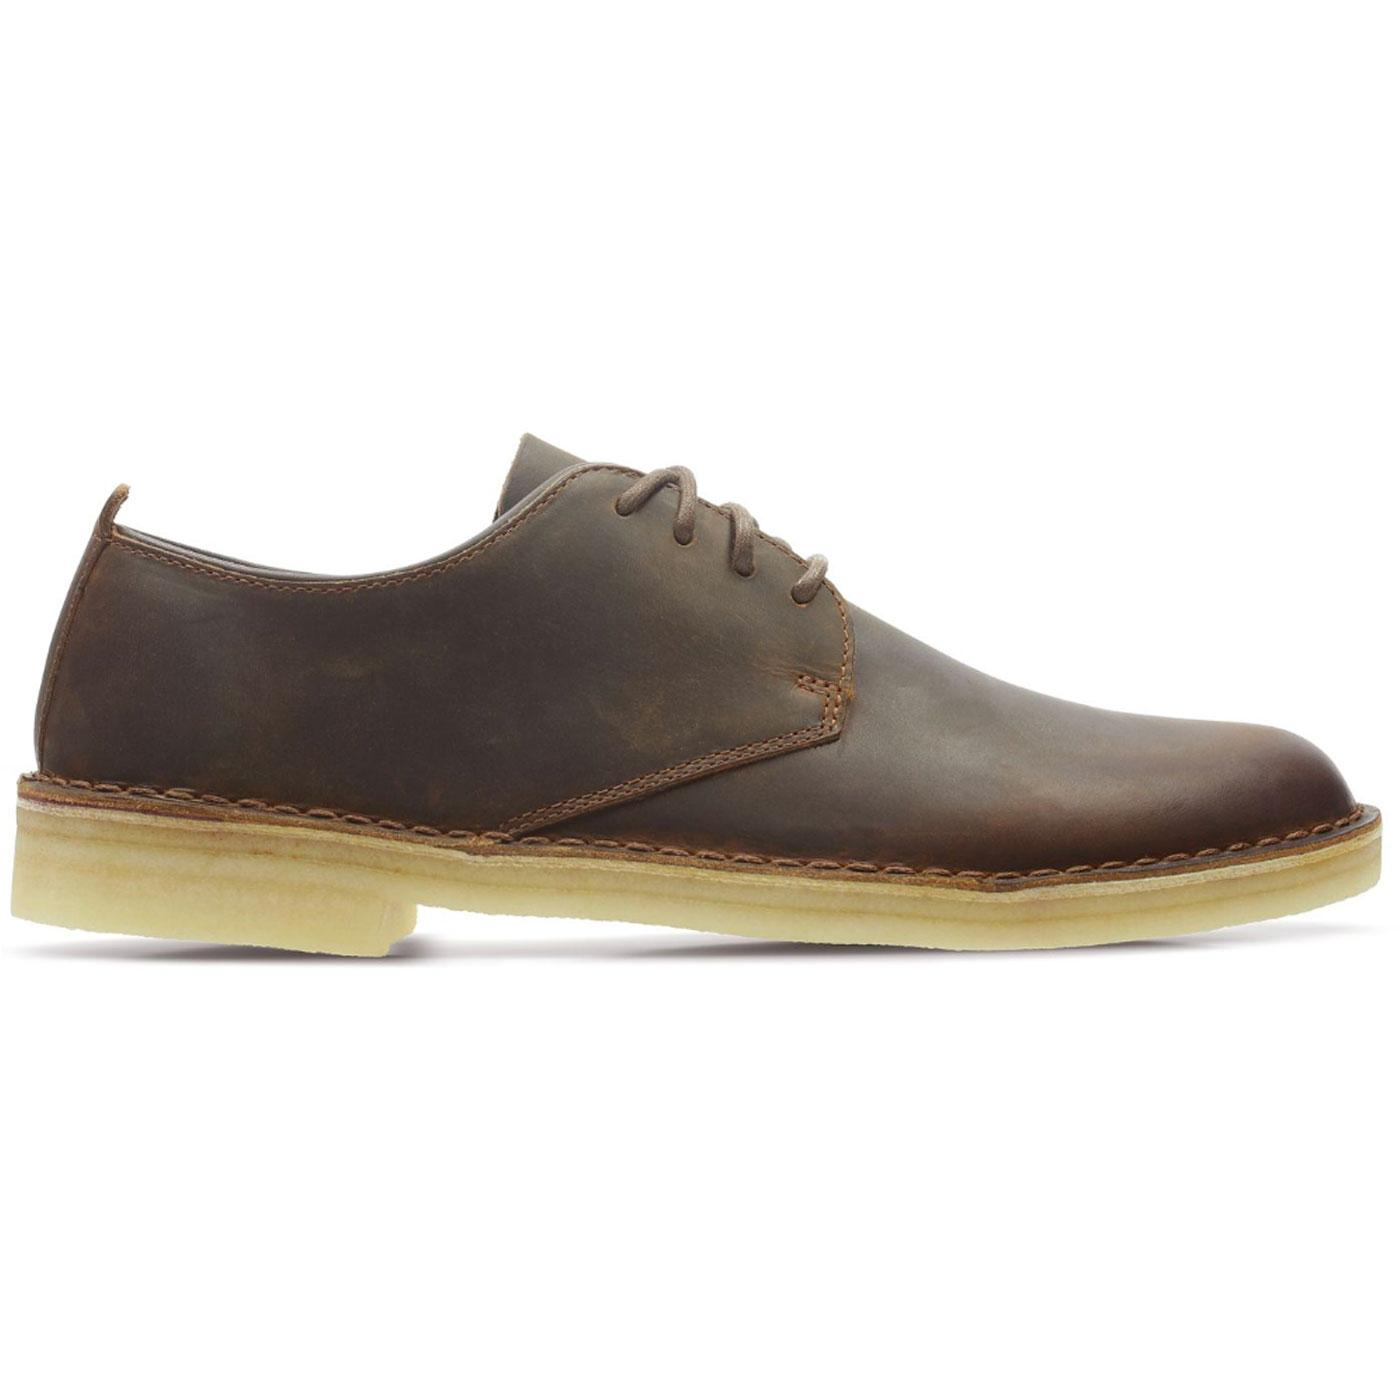 Desert London CLARKS ORIGINALS Mod Shoes Beeswax